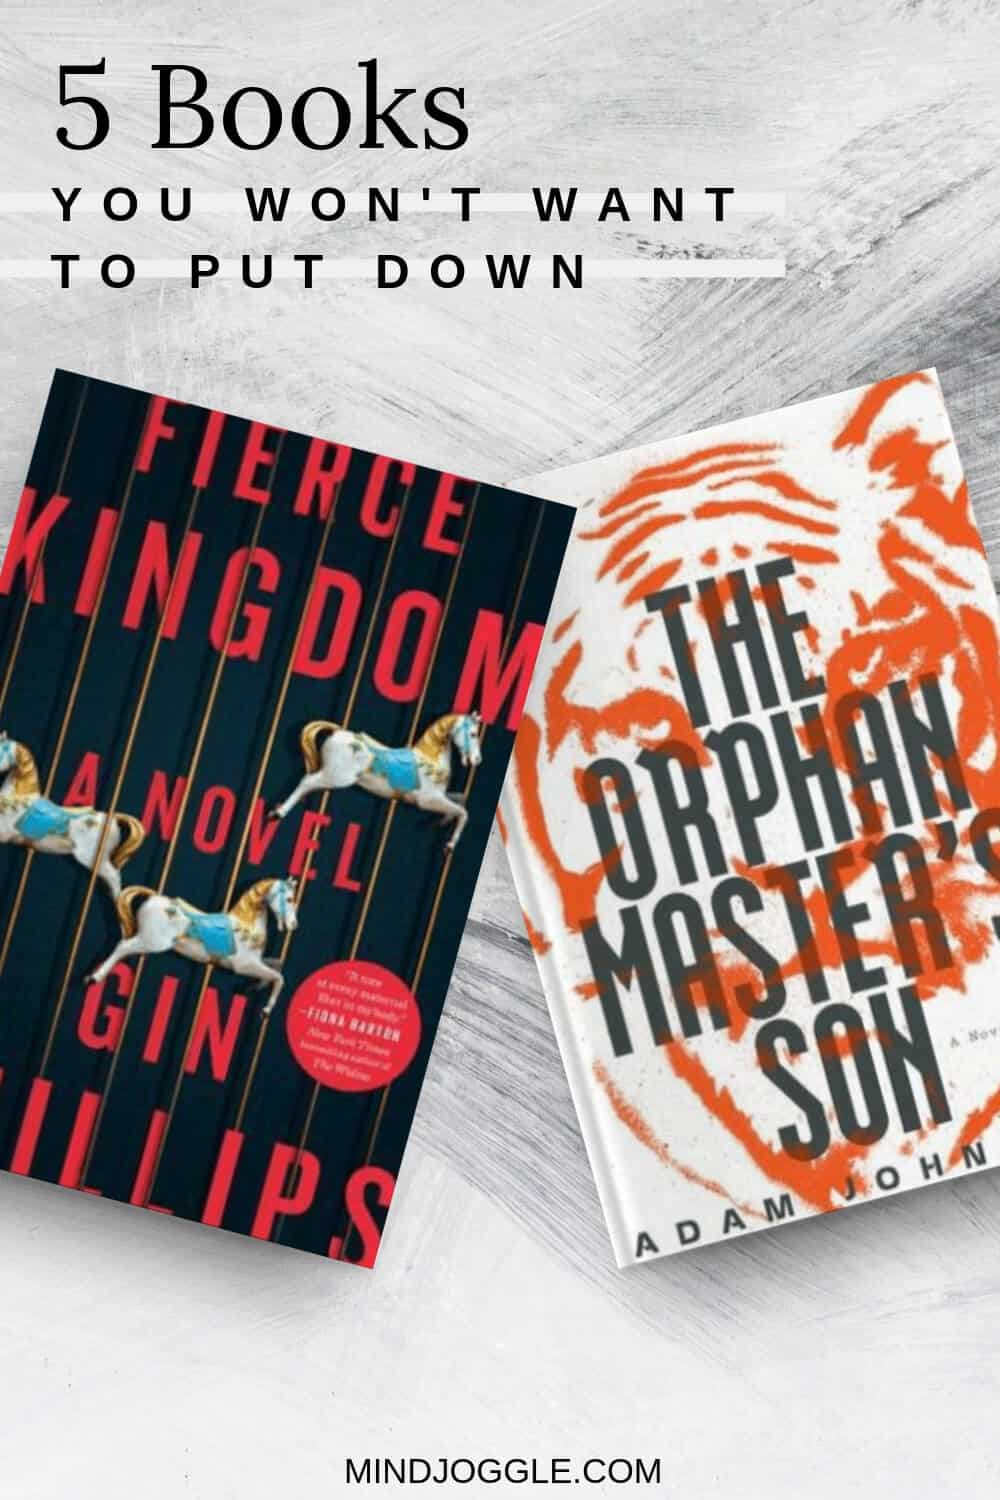 5 Thrilling Books You Won't Be Able to Put Down